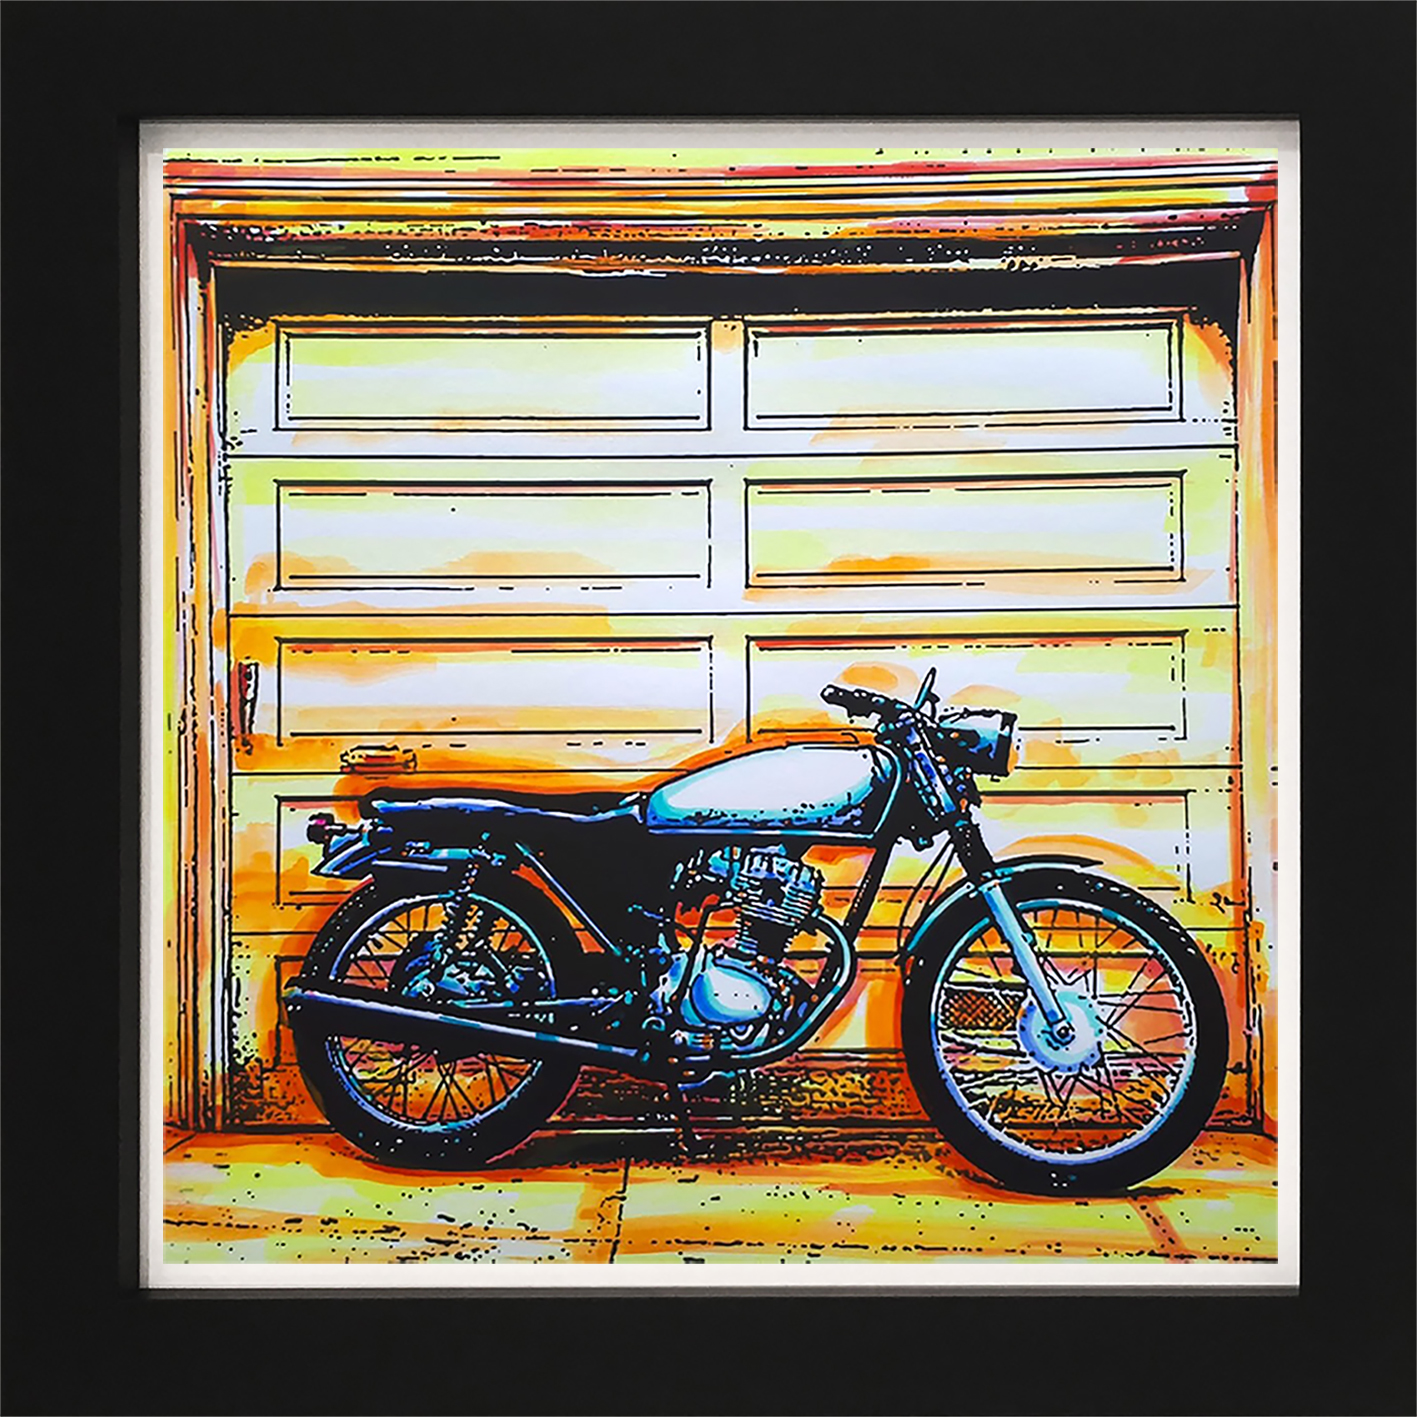 Motorcycle in frame